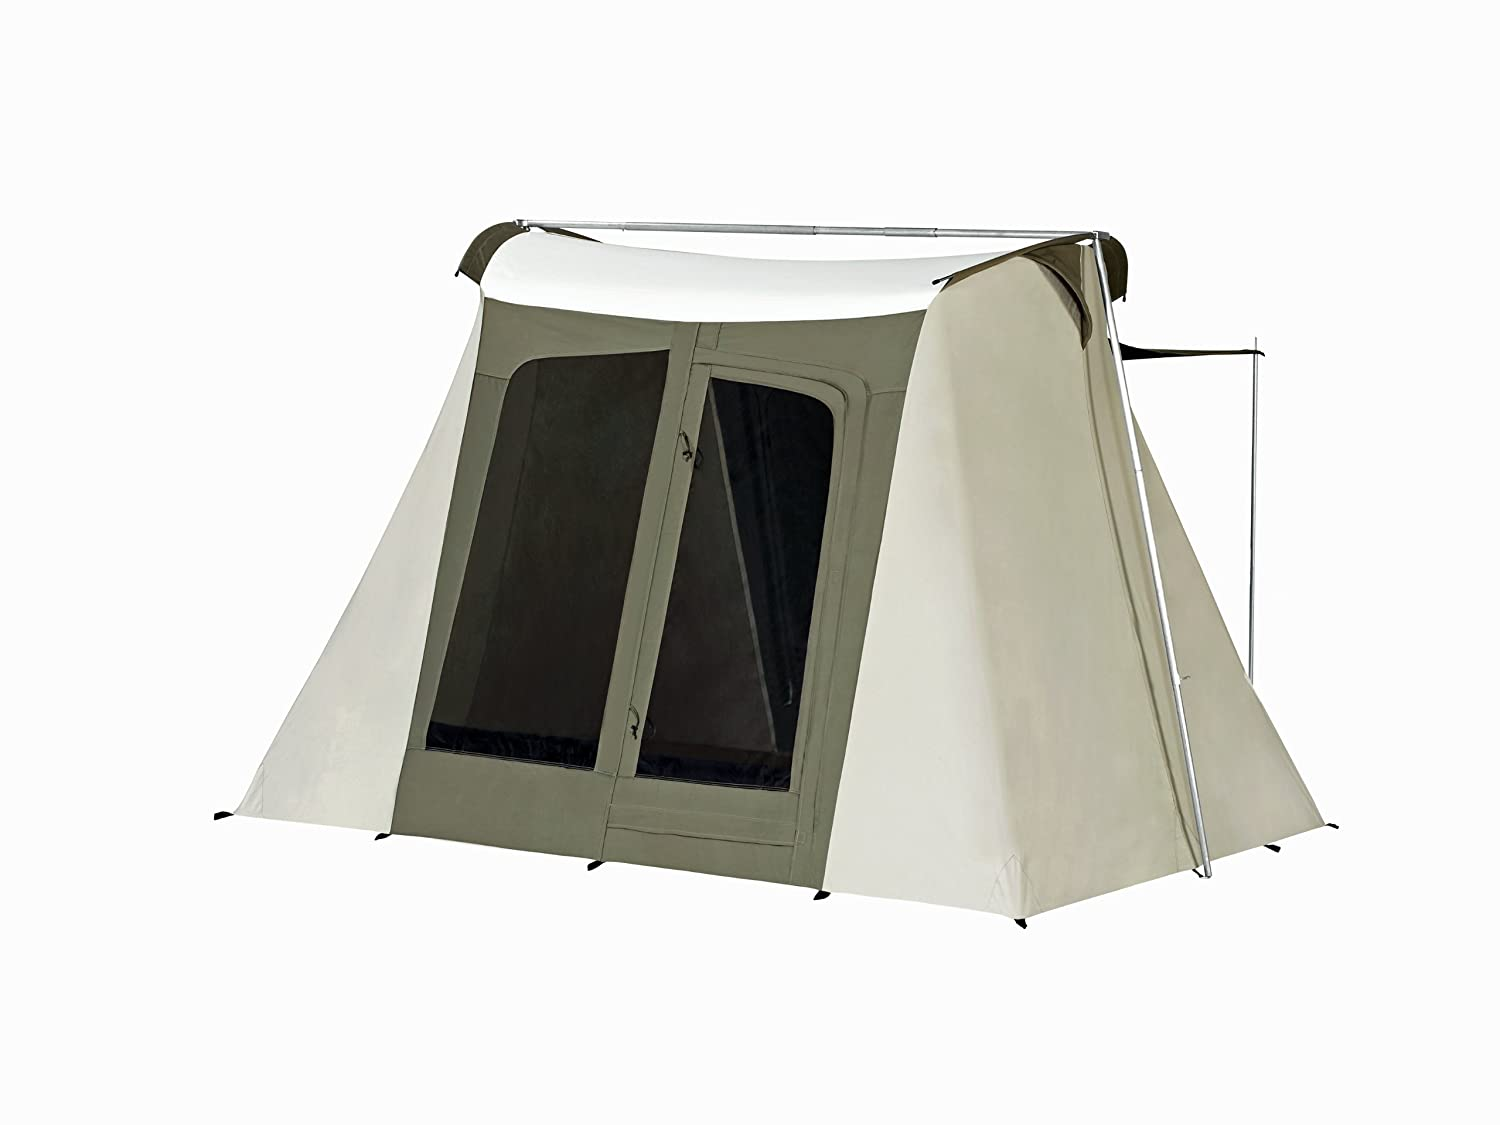 Amazon.com  Kodiak Canvas Flex-Bow 4-Person Canvas Tent Deluxe  Family Tents  Sports u0026 Outdoors  sc 1 st  Amazon.com : best 4 man tent - memphite.com